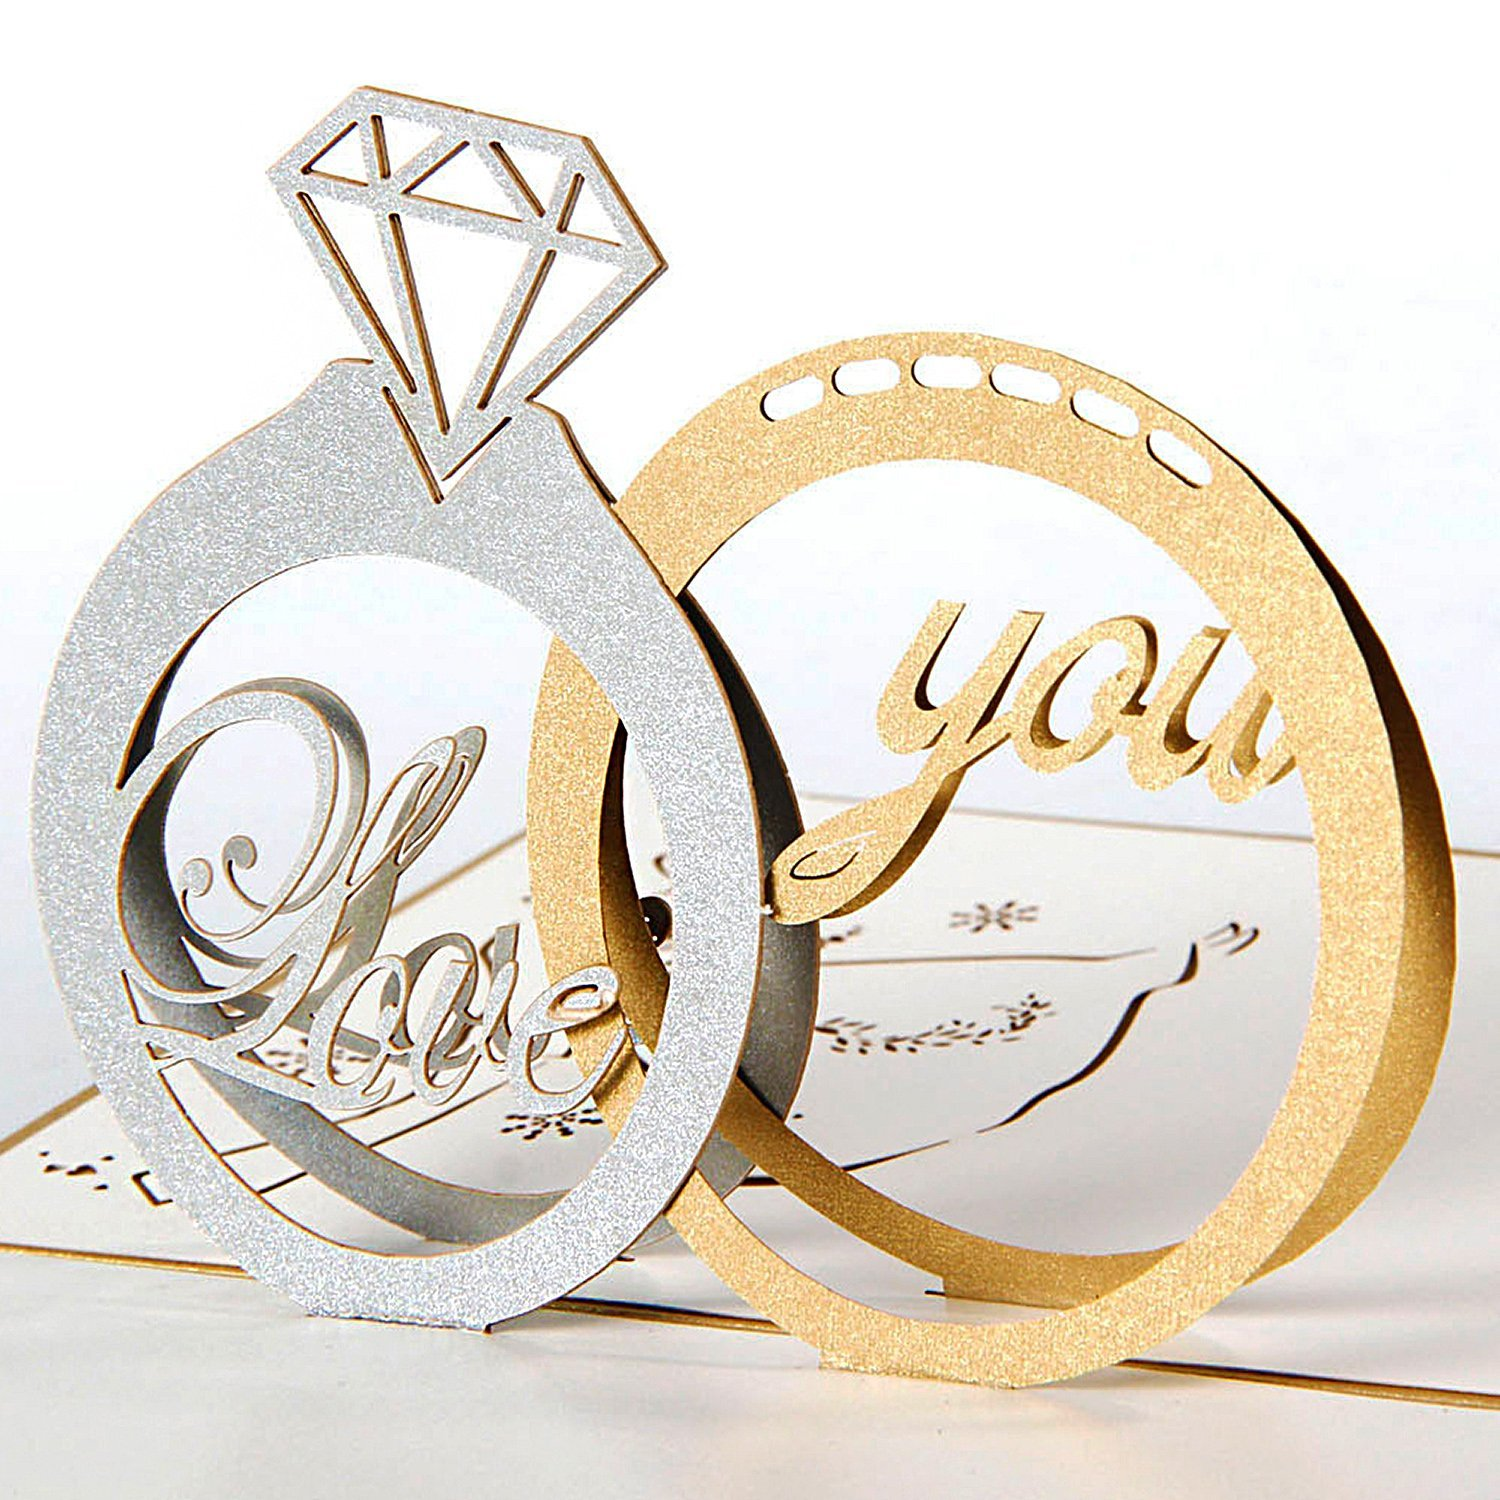 Cheap Love Greeting Card Messages Find Love Greeting Card Messages